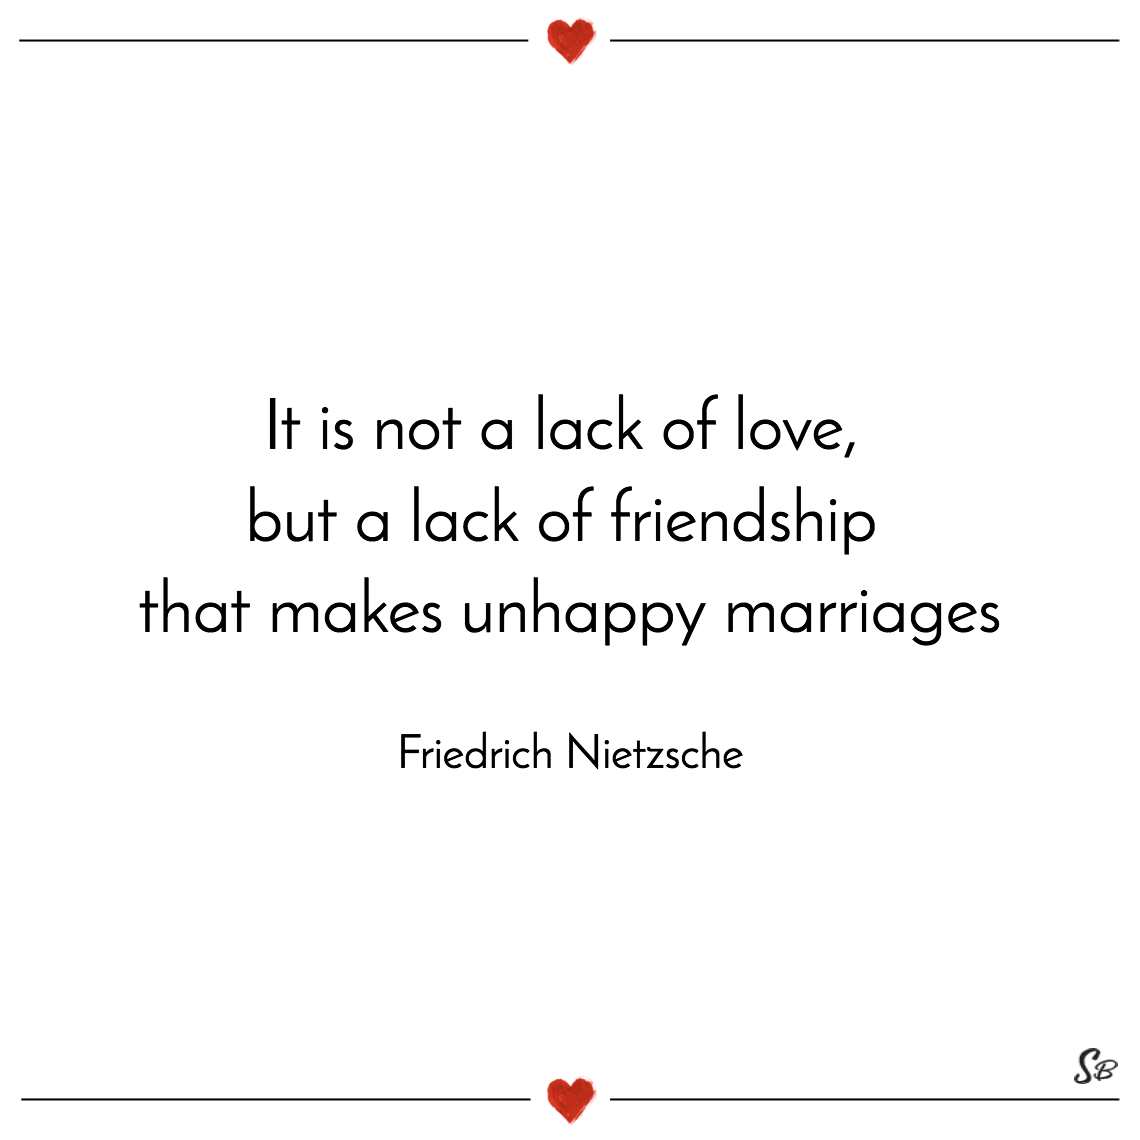 Quotes About Long Lasting Friendship Entrancing 31 Beautiful Marriage Quotes About Love And Friendship  Spirit Button